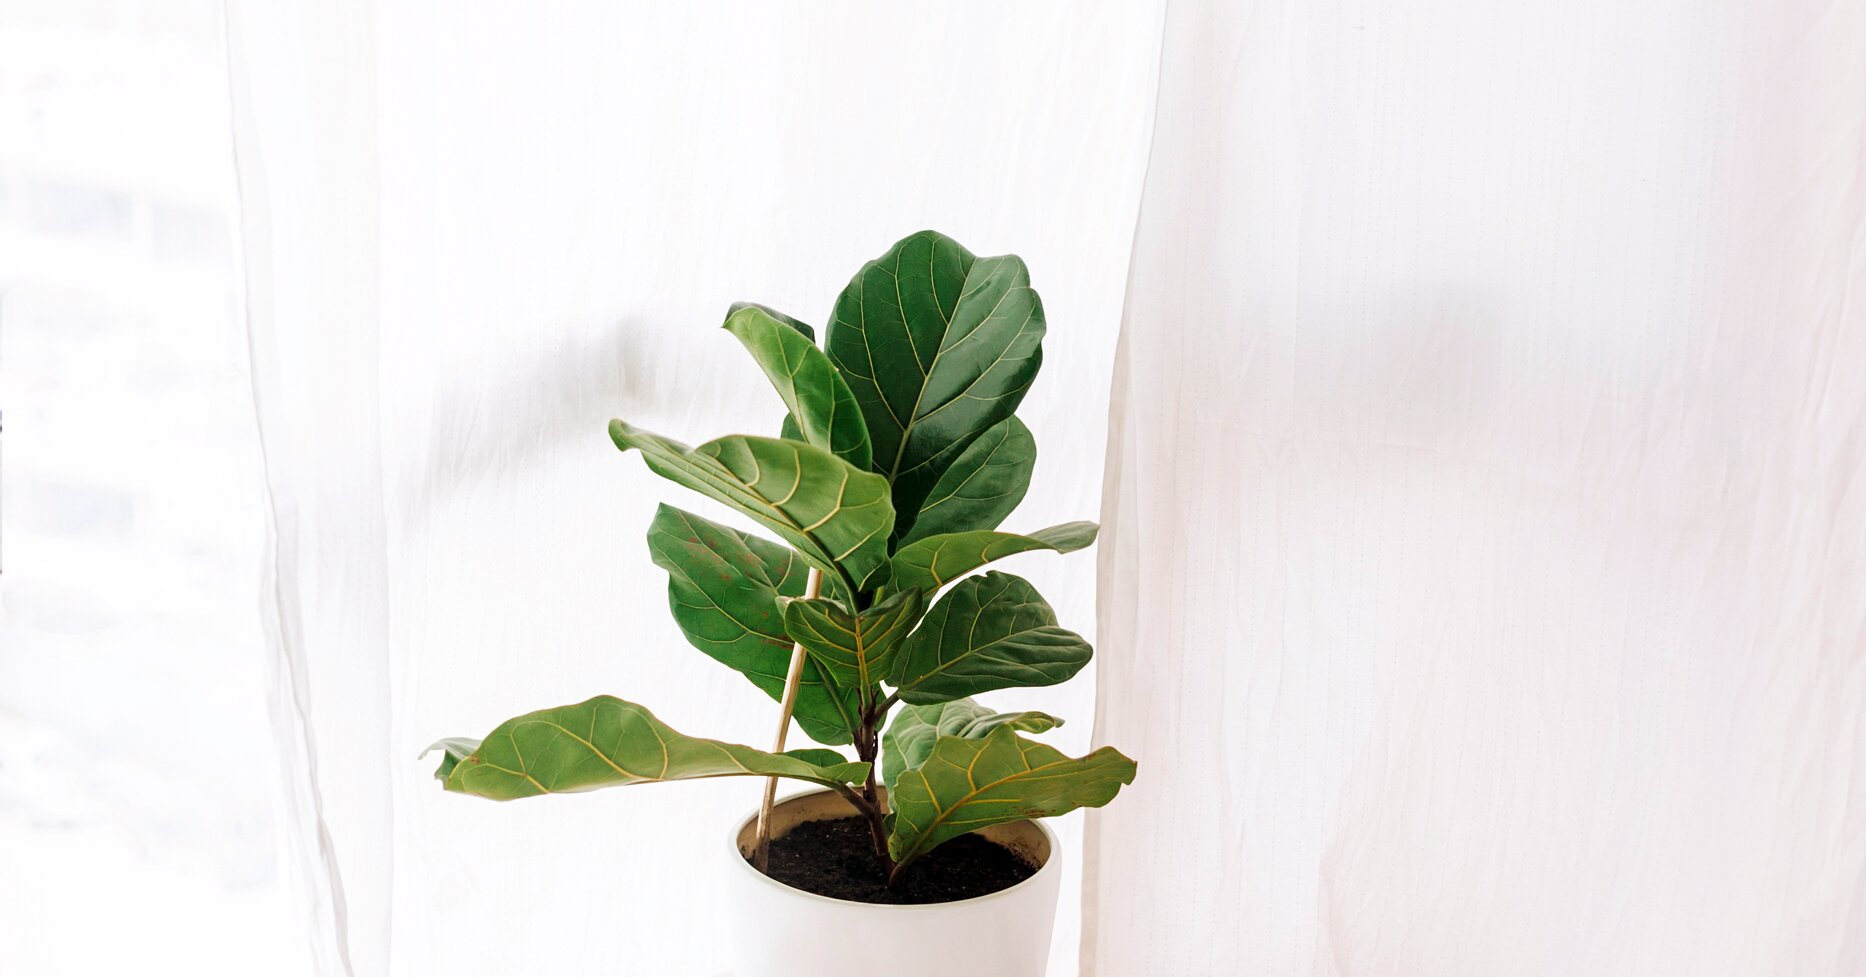 Fiddle Leaf Figs Are One of the Most Popular Houseplants—Here's How to Care for Yours